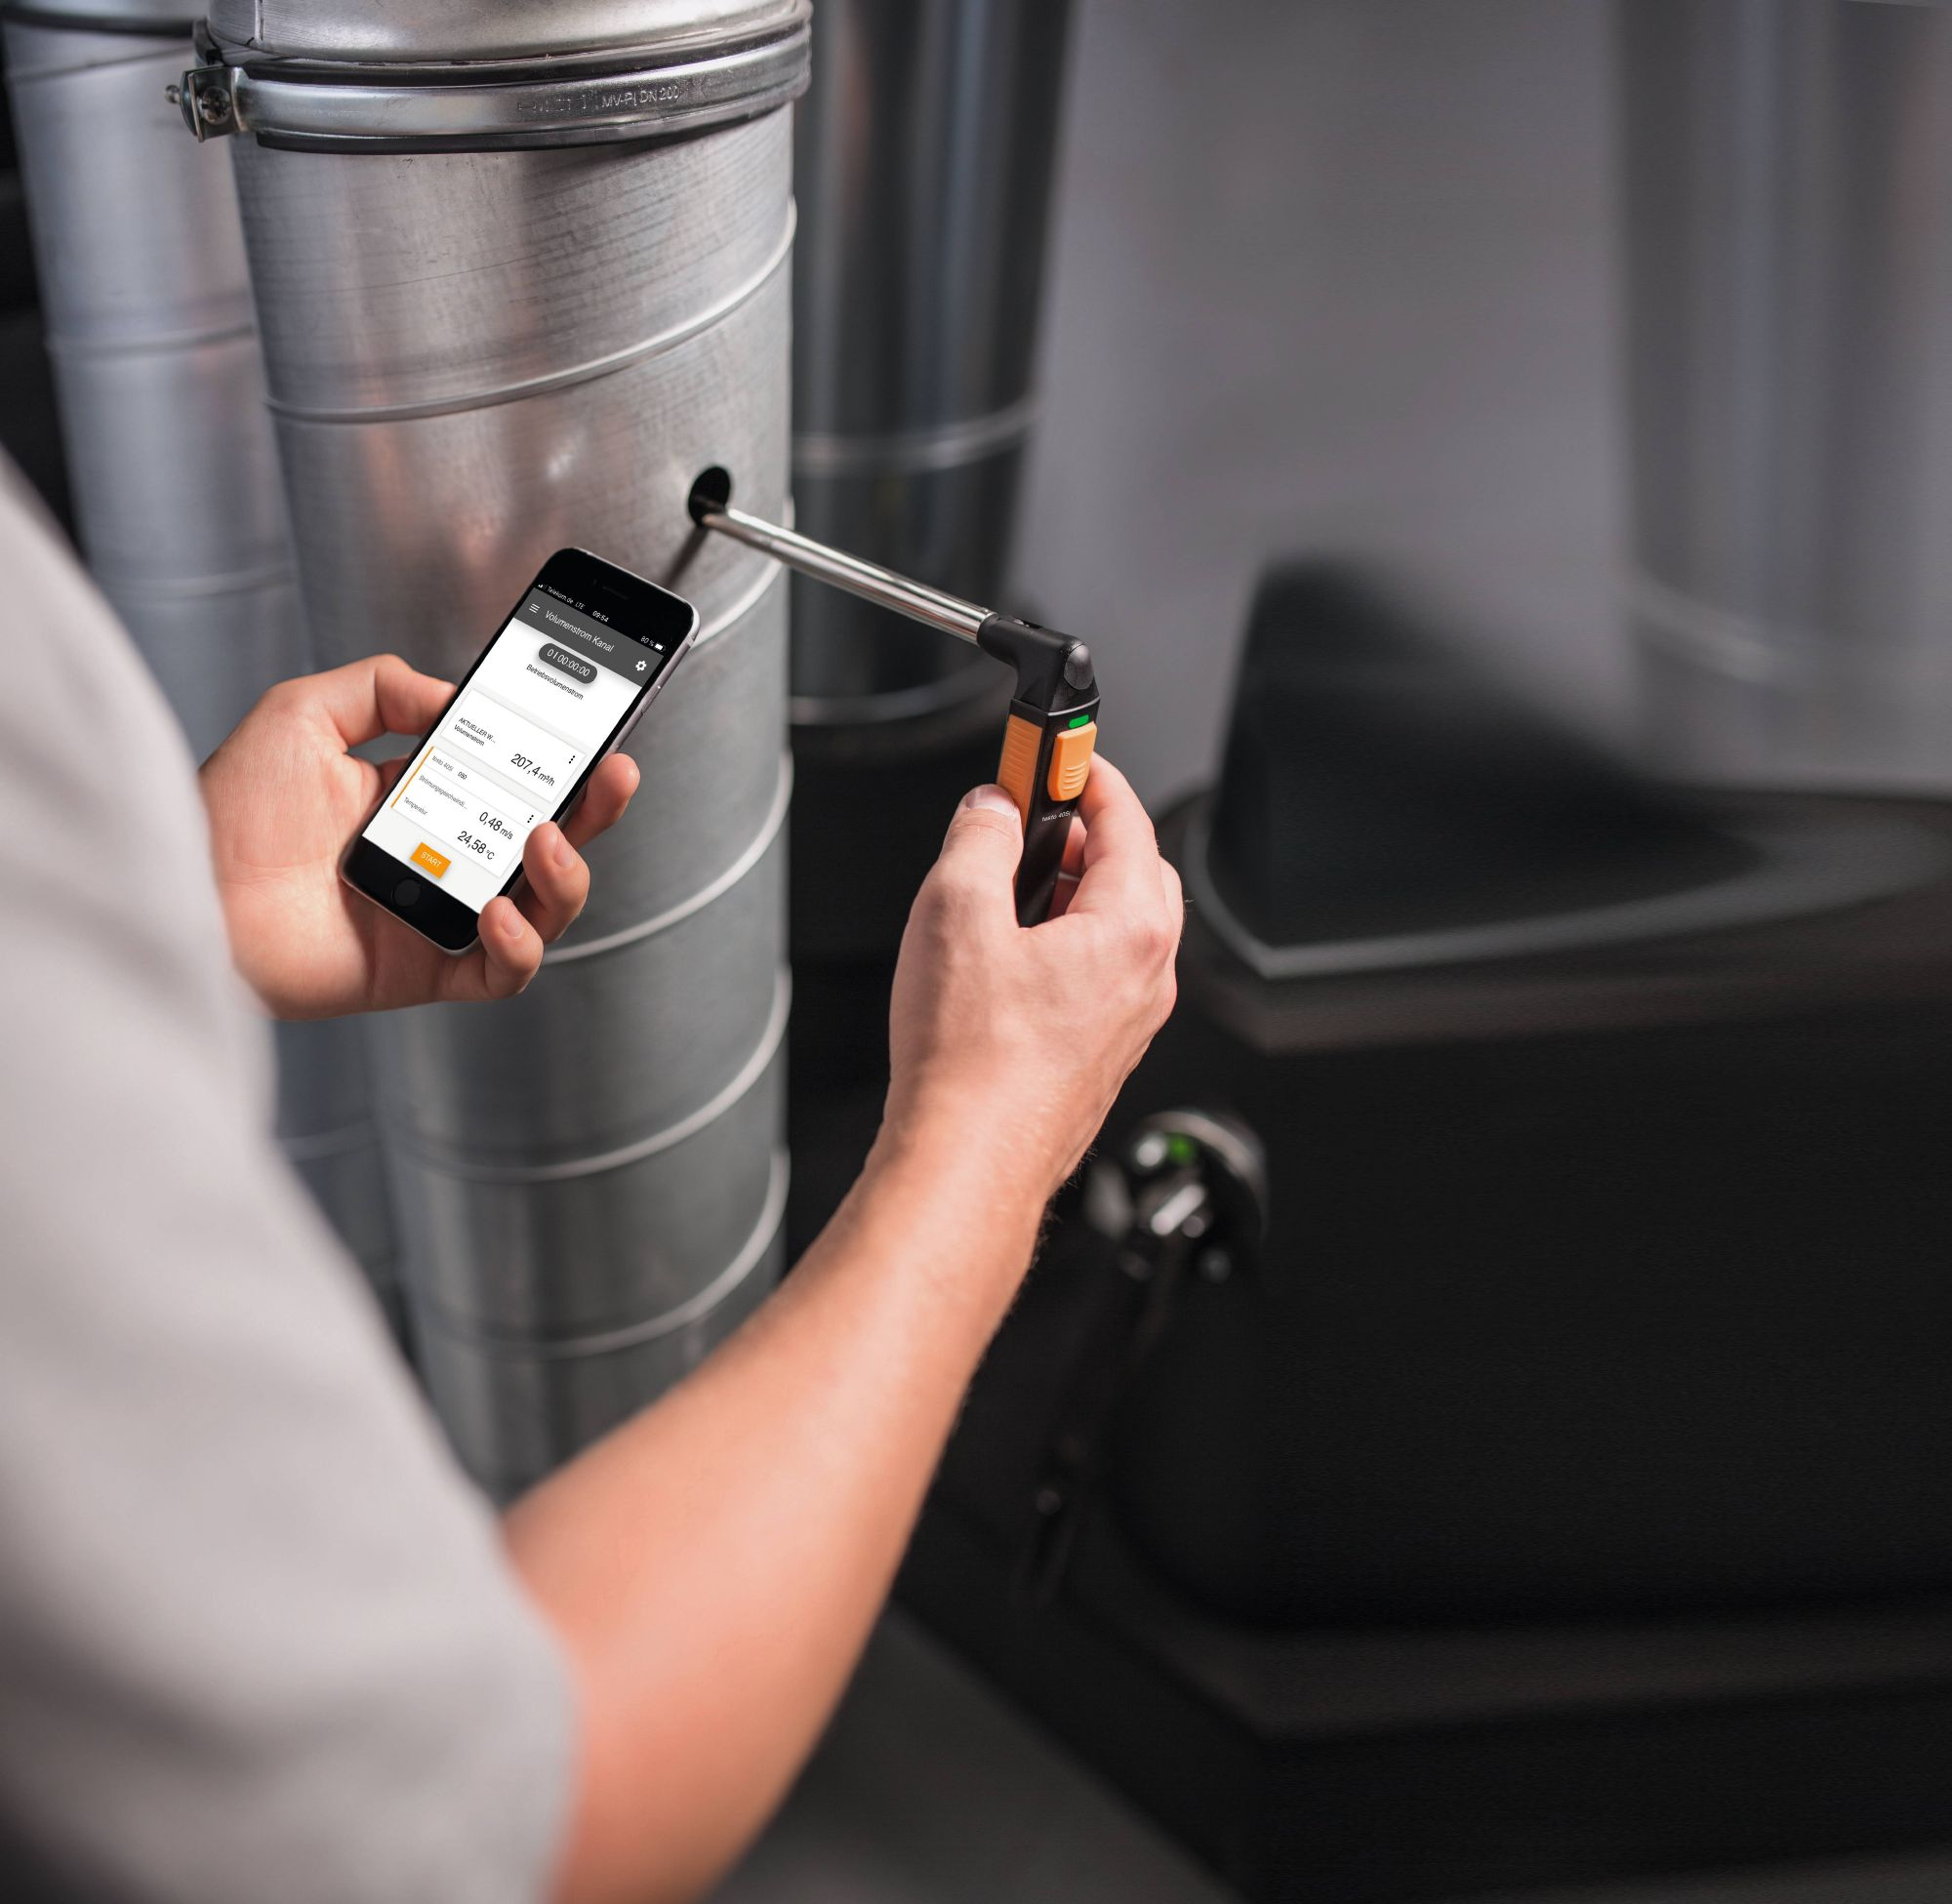 testo 405i – Thermal anemometer operated with your smartphone